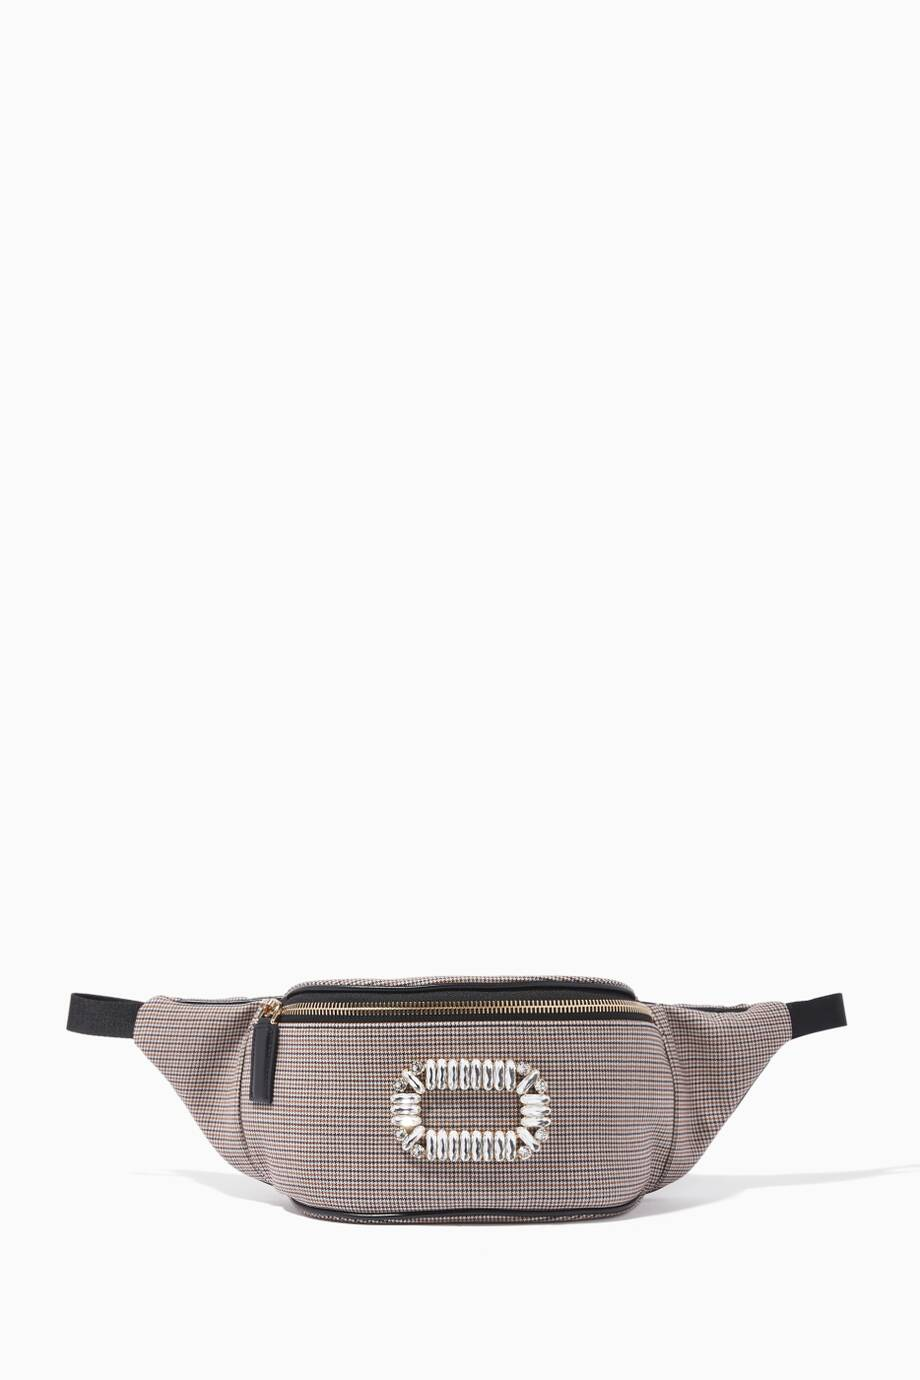 Shop Luxury Roger Vivier Grey Houndstooth Belty Viv Belt Bag ... 174dd41f55dd1